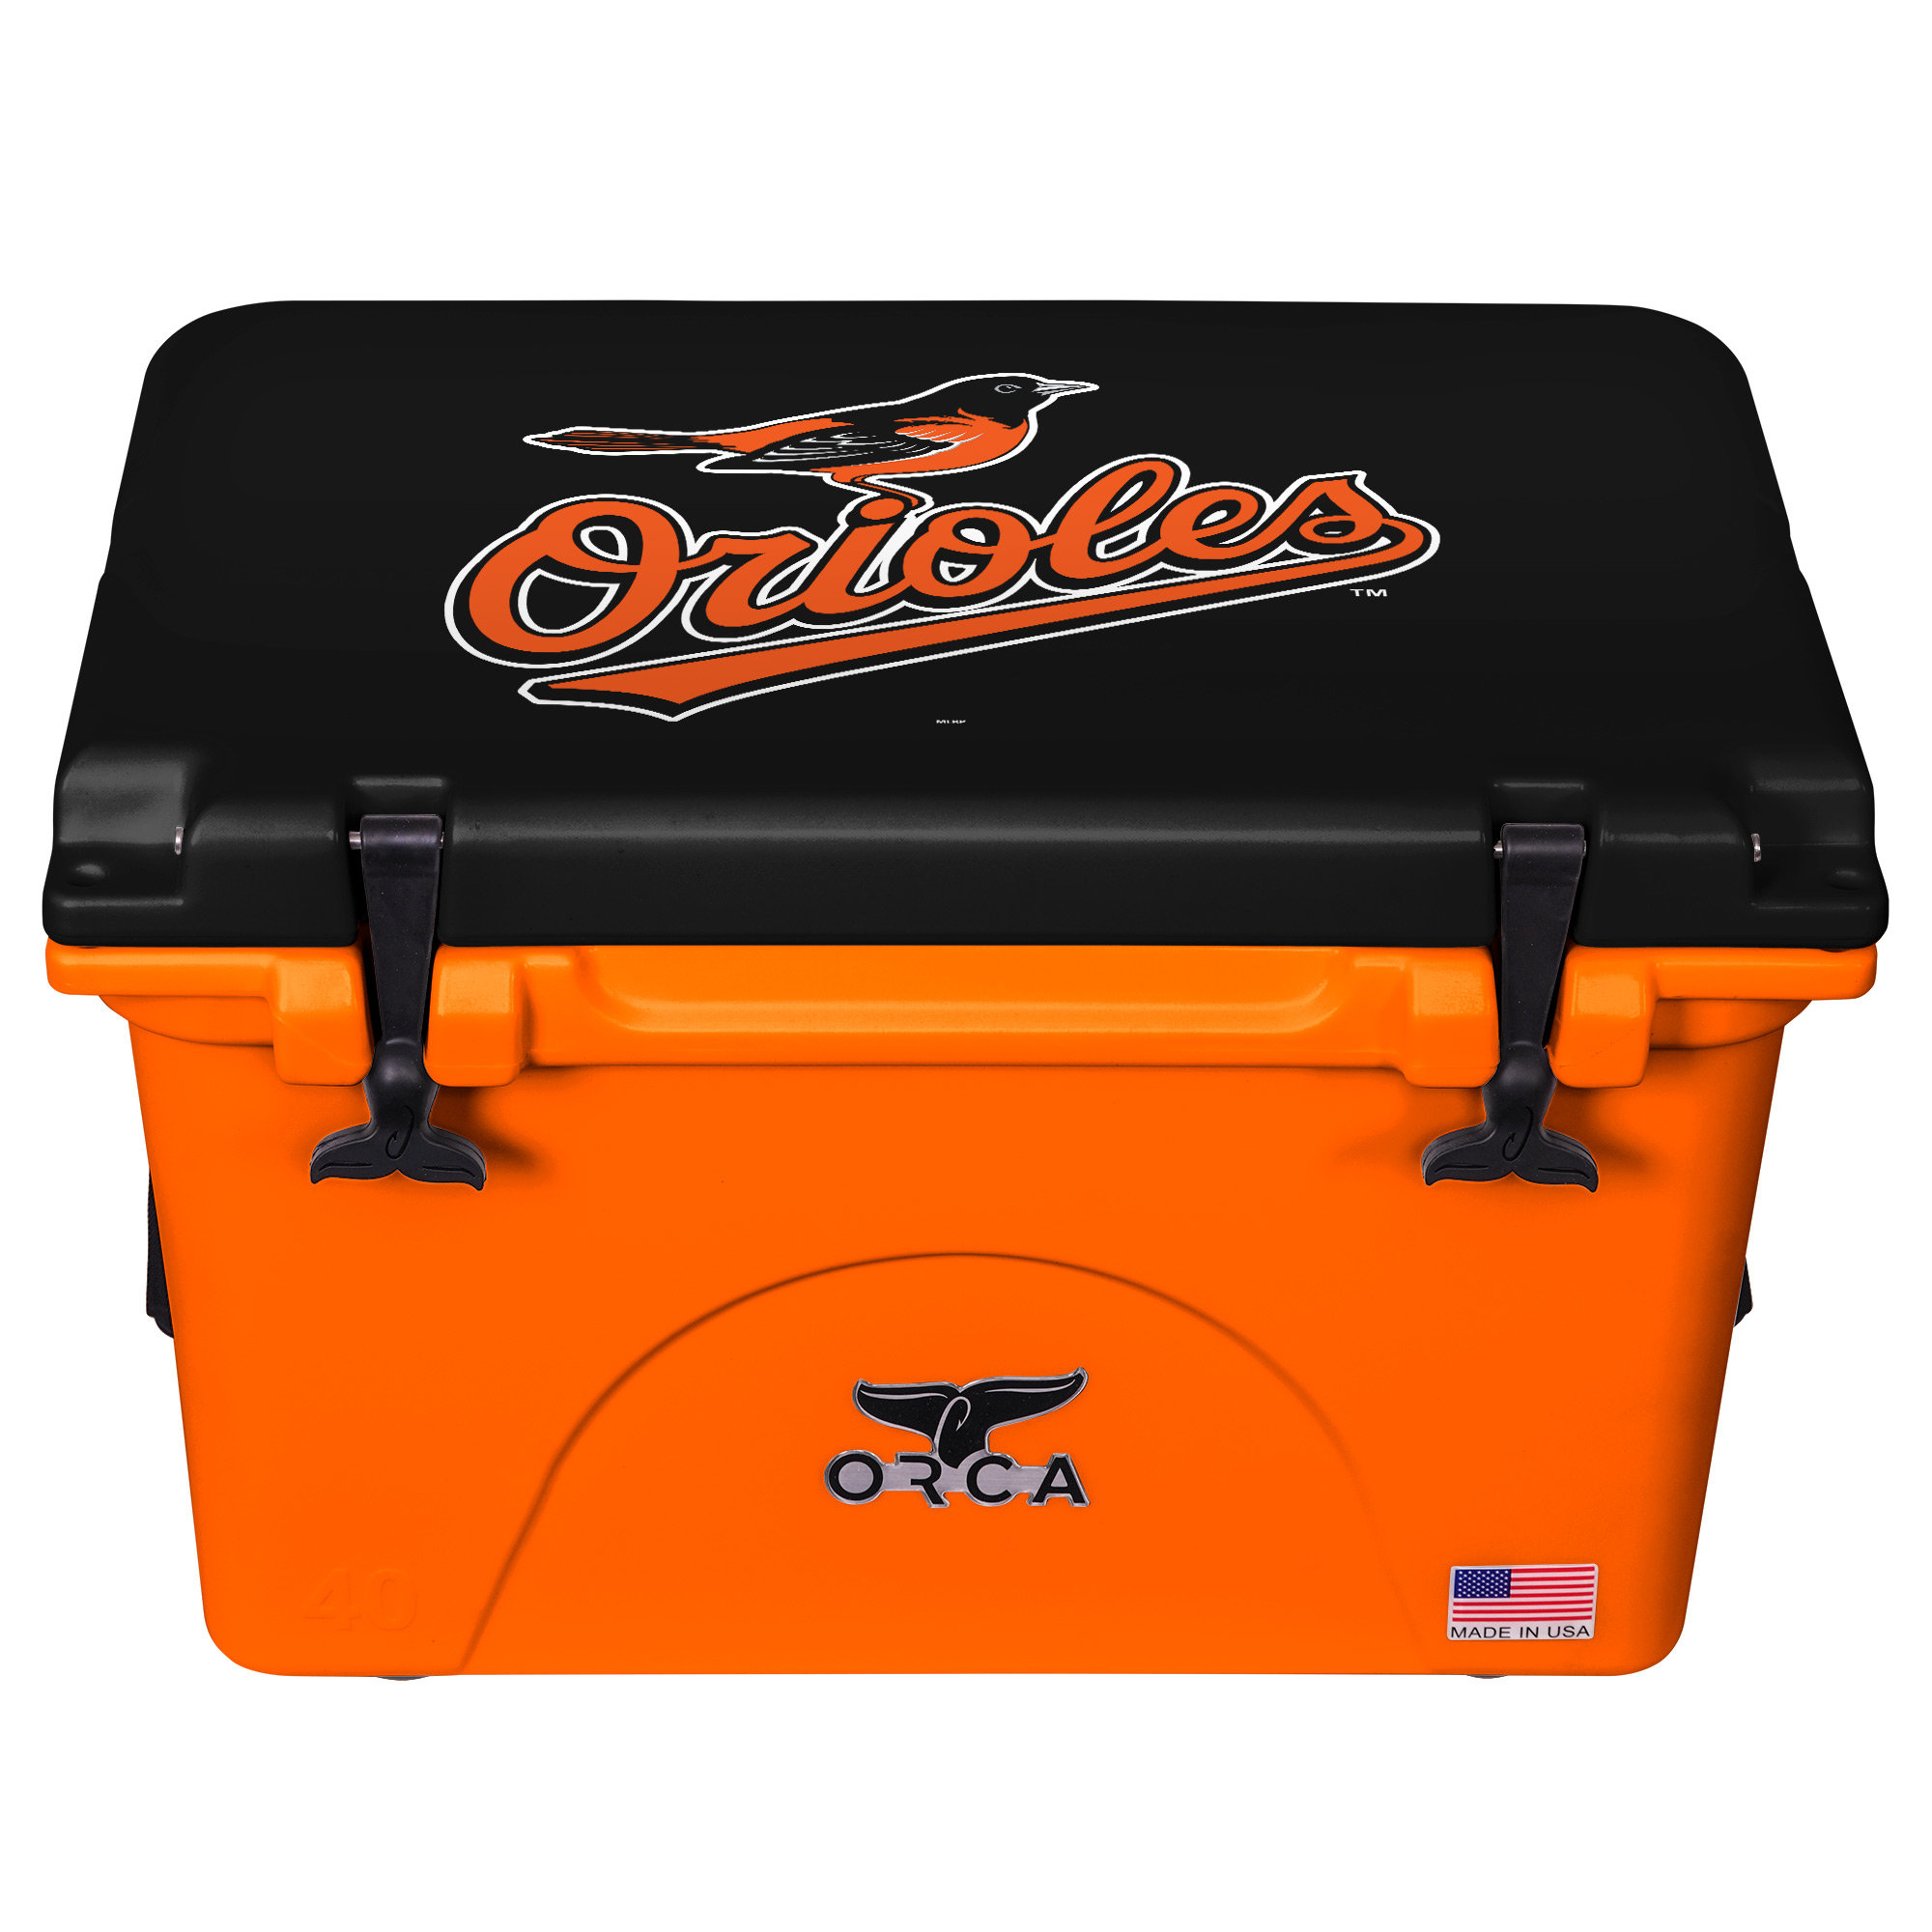 Baltimore Orioles ORCA 40-Quart Hard-Sided Cooler - No Size